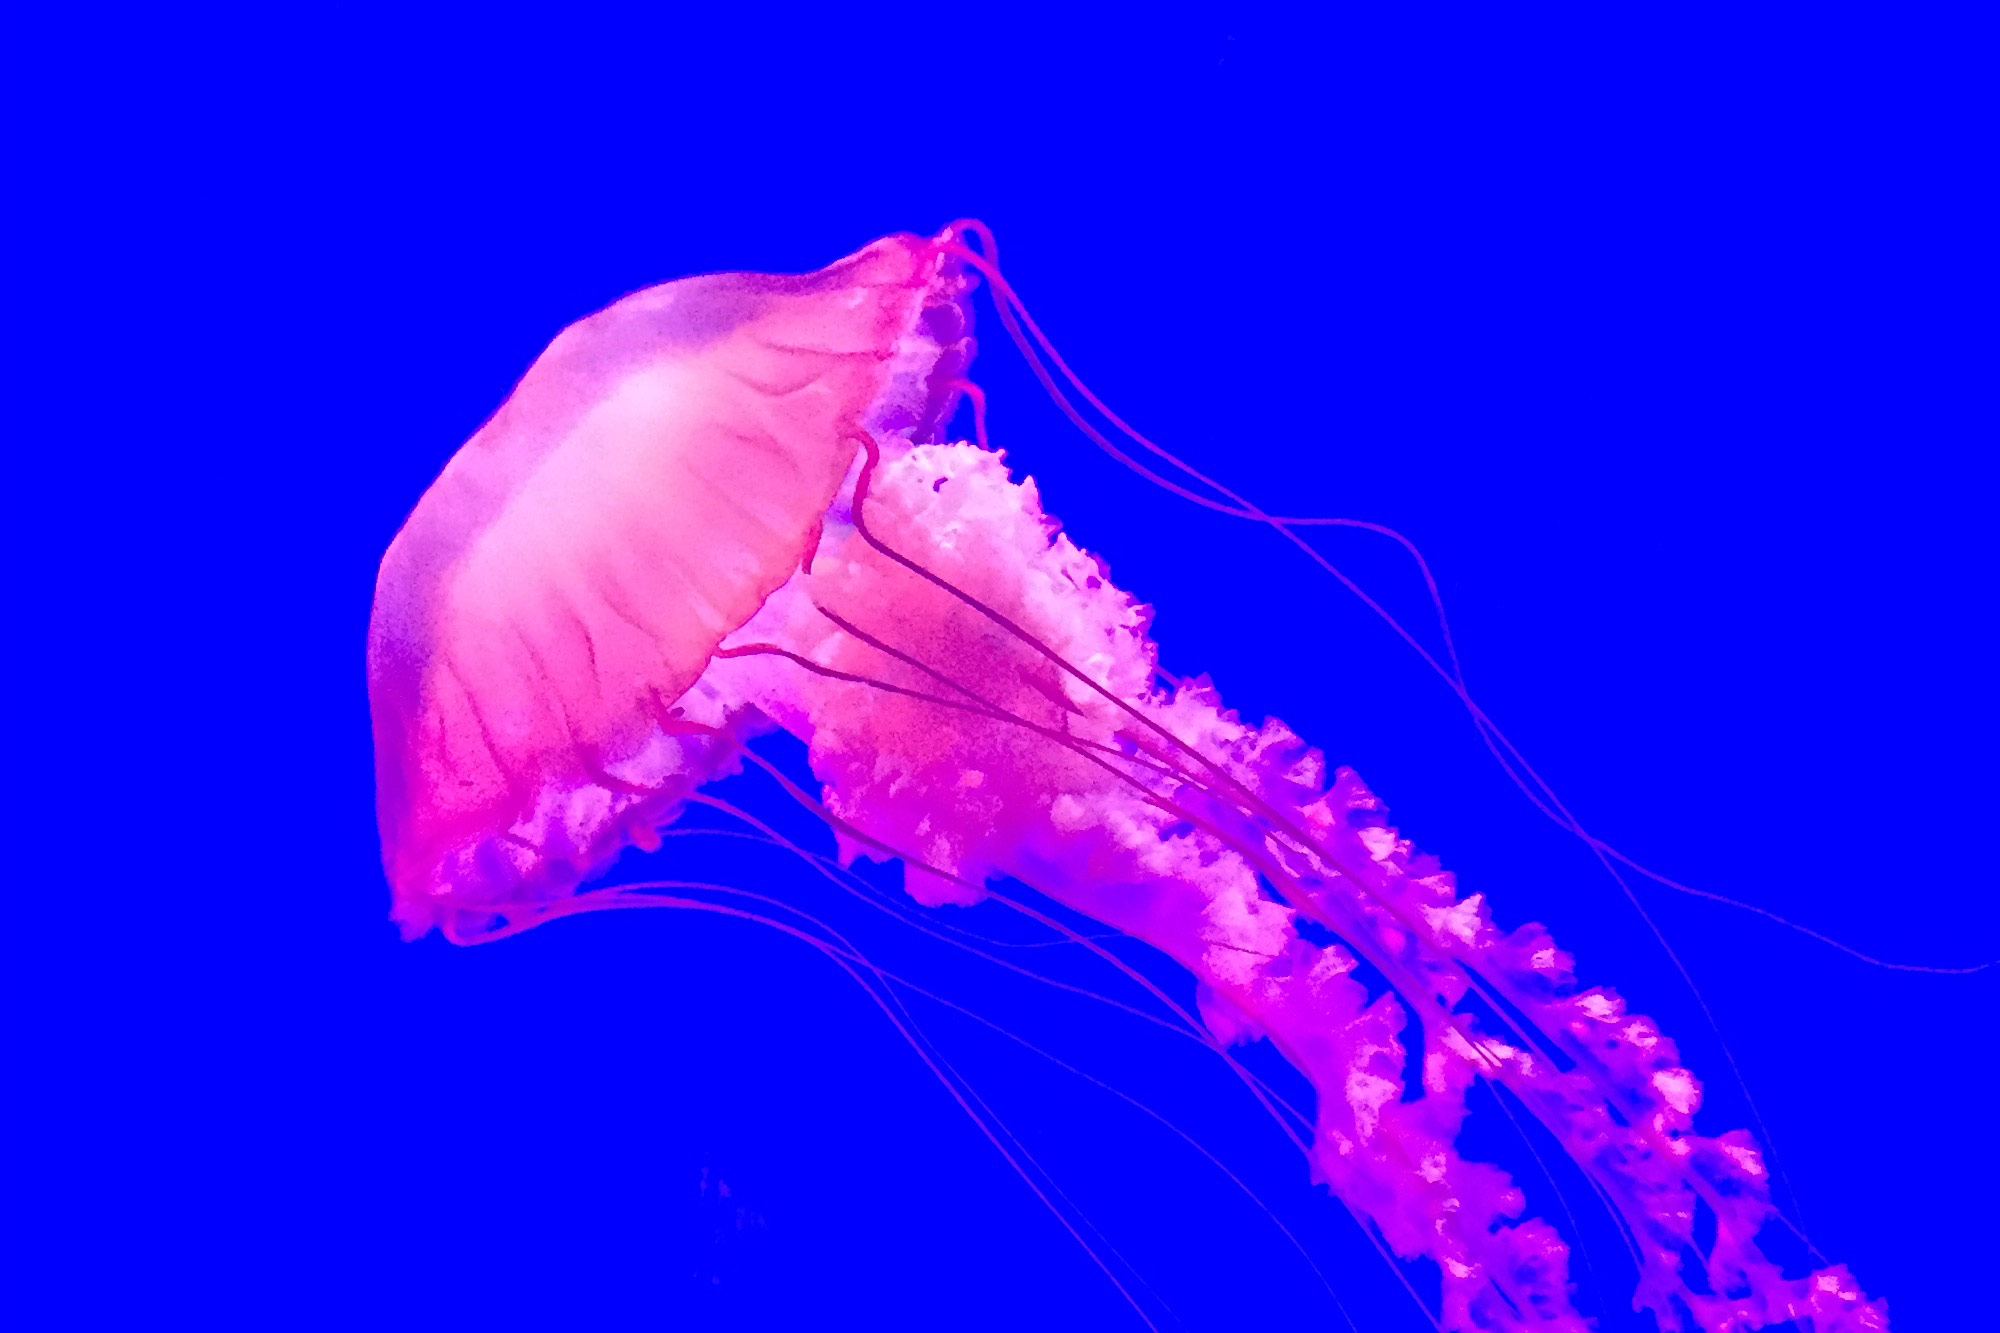 gpj-studio-visual-exploration-jelly-fish-04